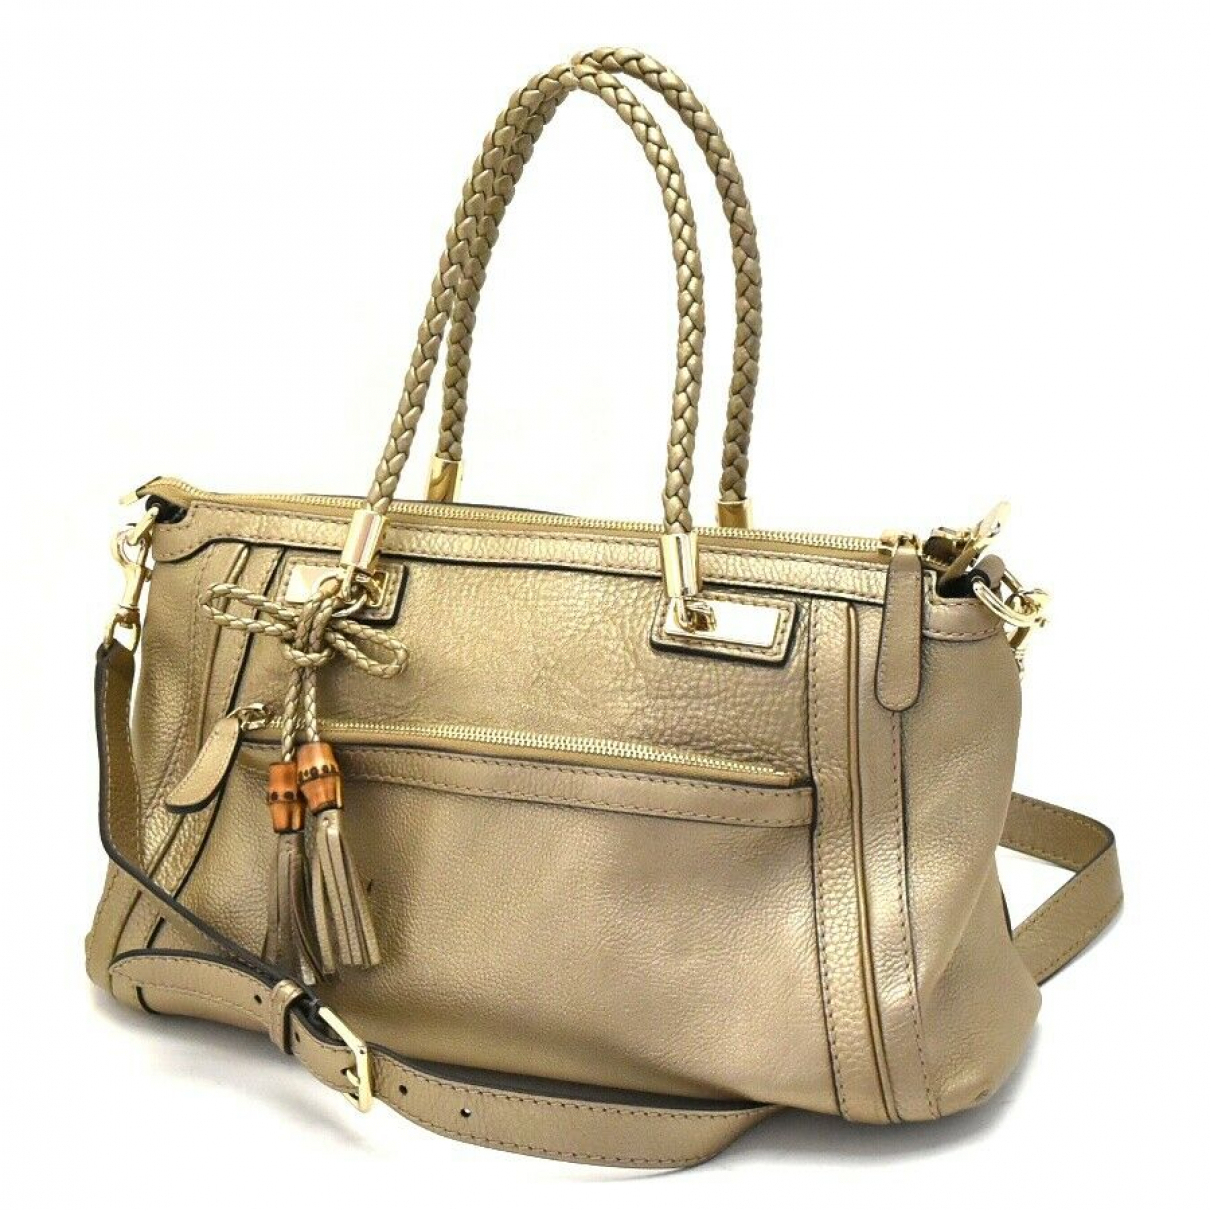 Gucci N Patent leather handbag for Women N